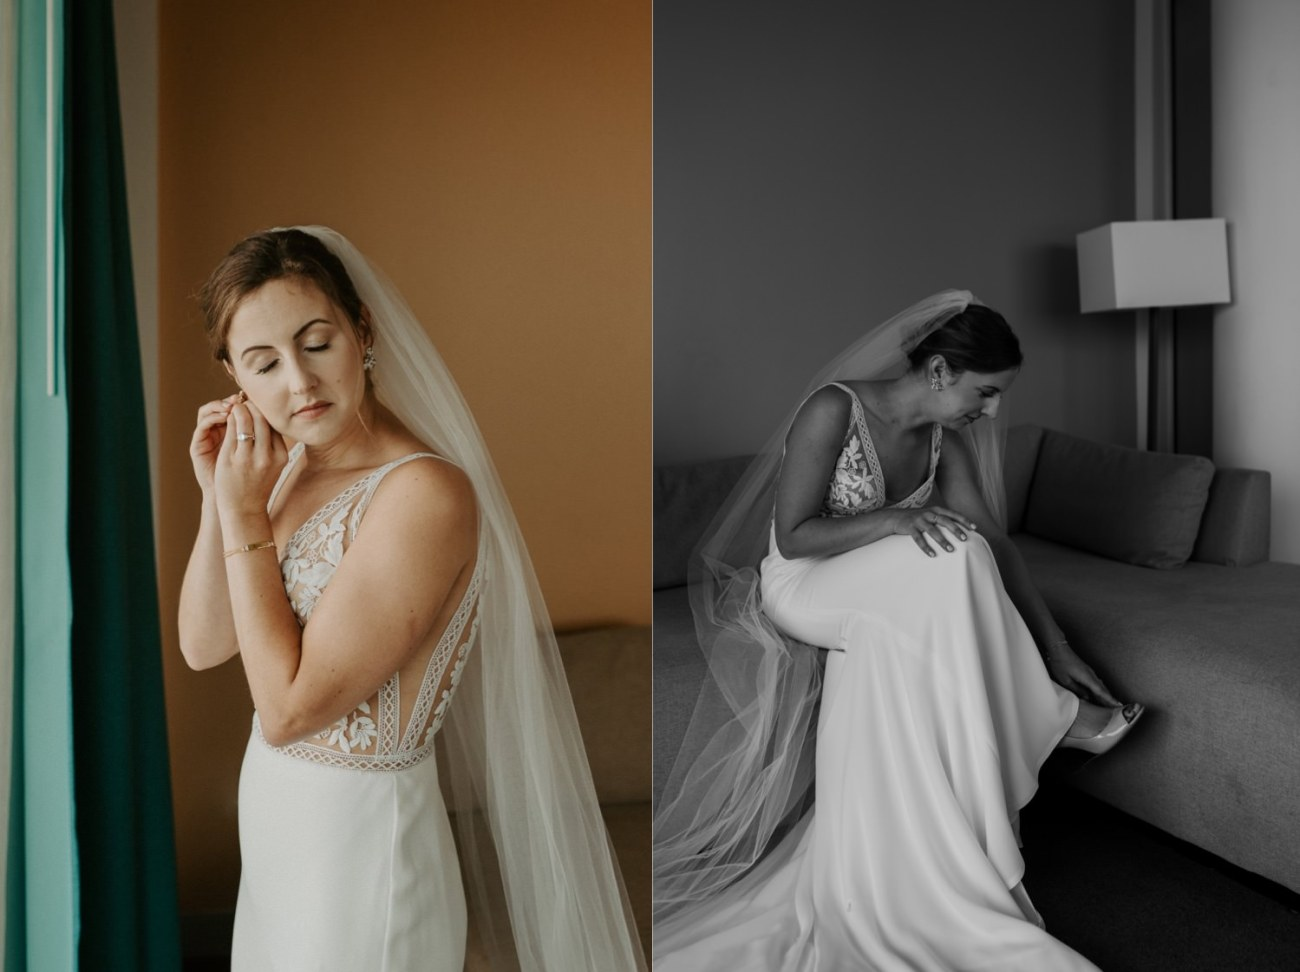 Antique Loft Hoboken Wedding New Jersey Wedding Photographer Anais Possamai Photography 011